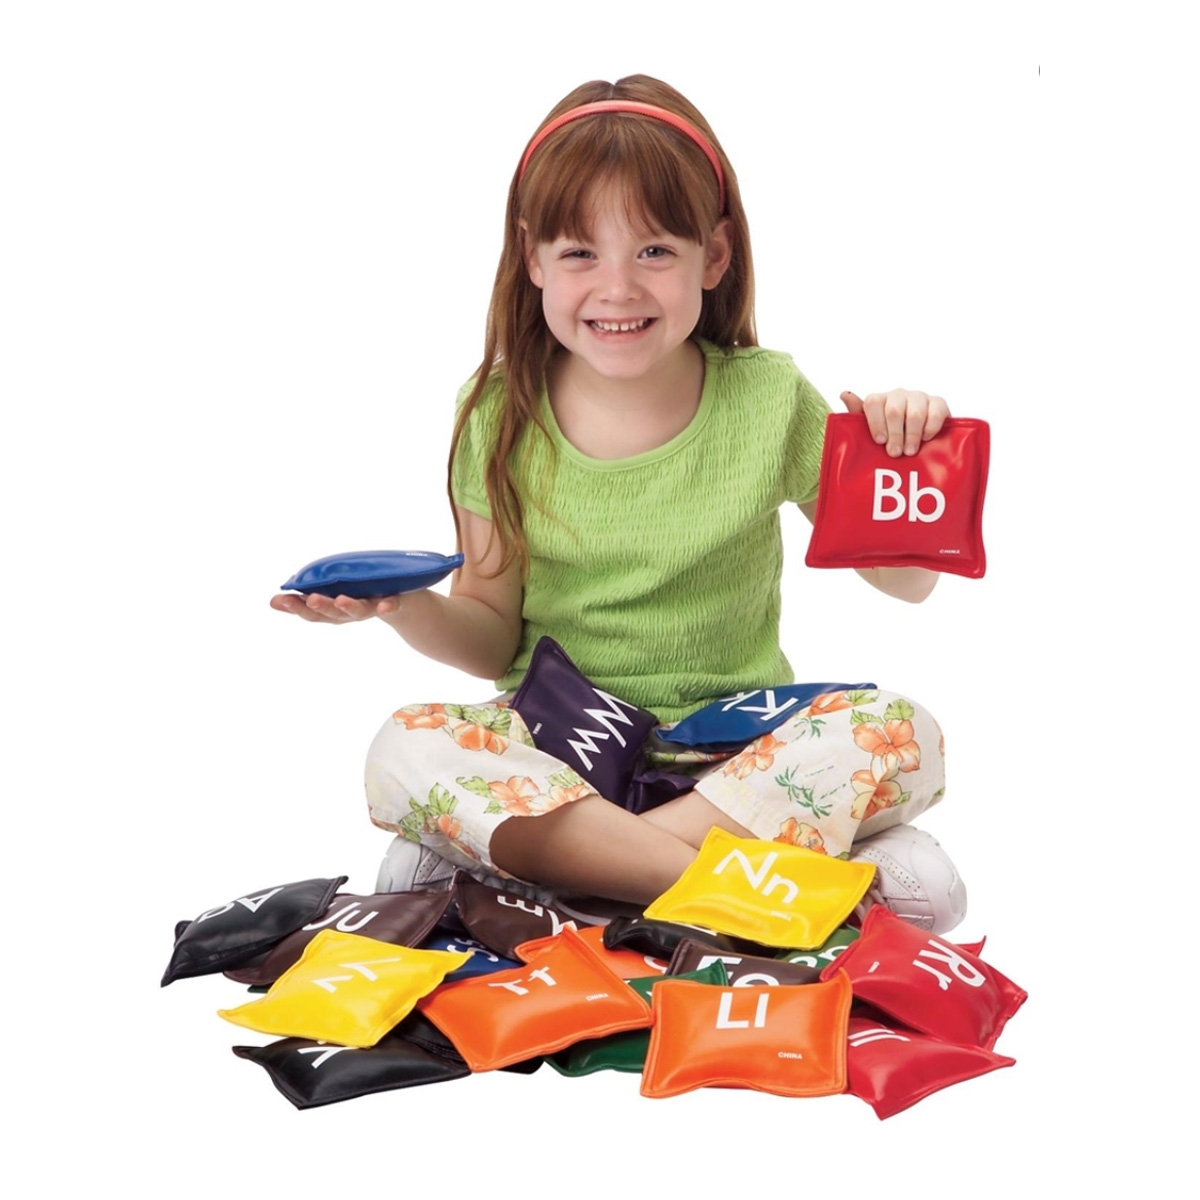 little girl with a set of colorful letters bean bags